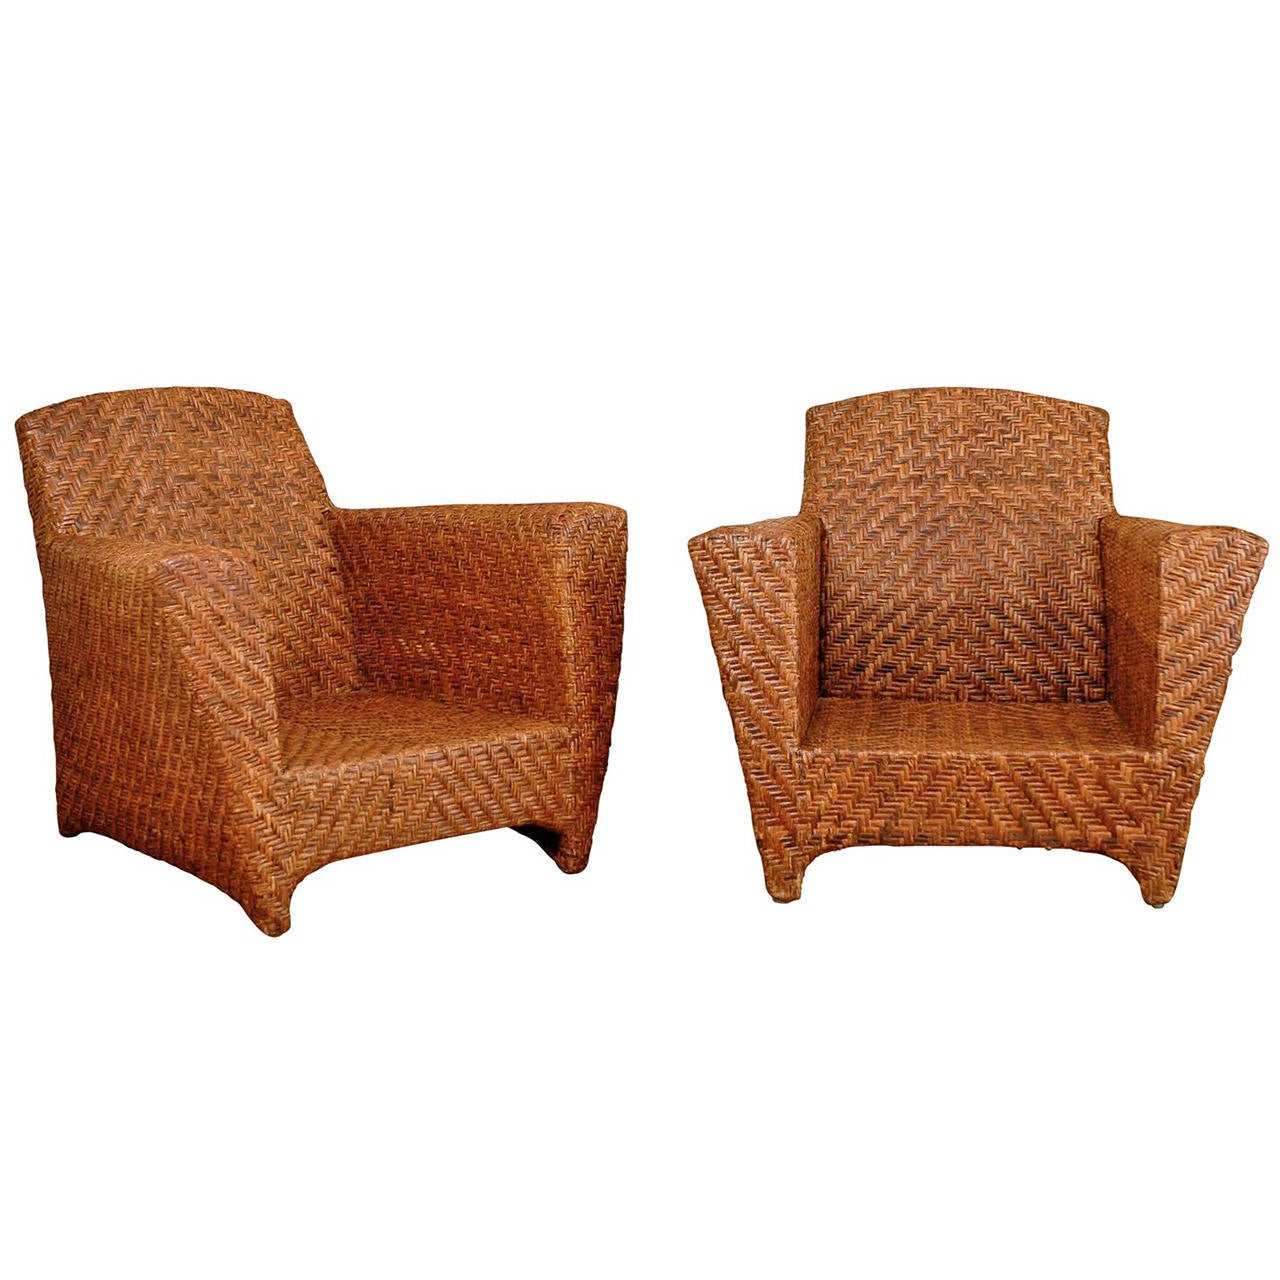 Vintage Rattan Chairs Handsome Pair Of Vintage Rattan Club Chairs At 1stdibs